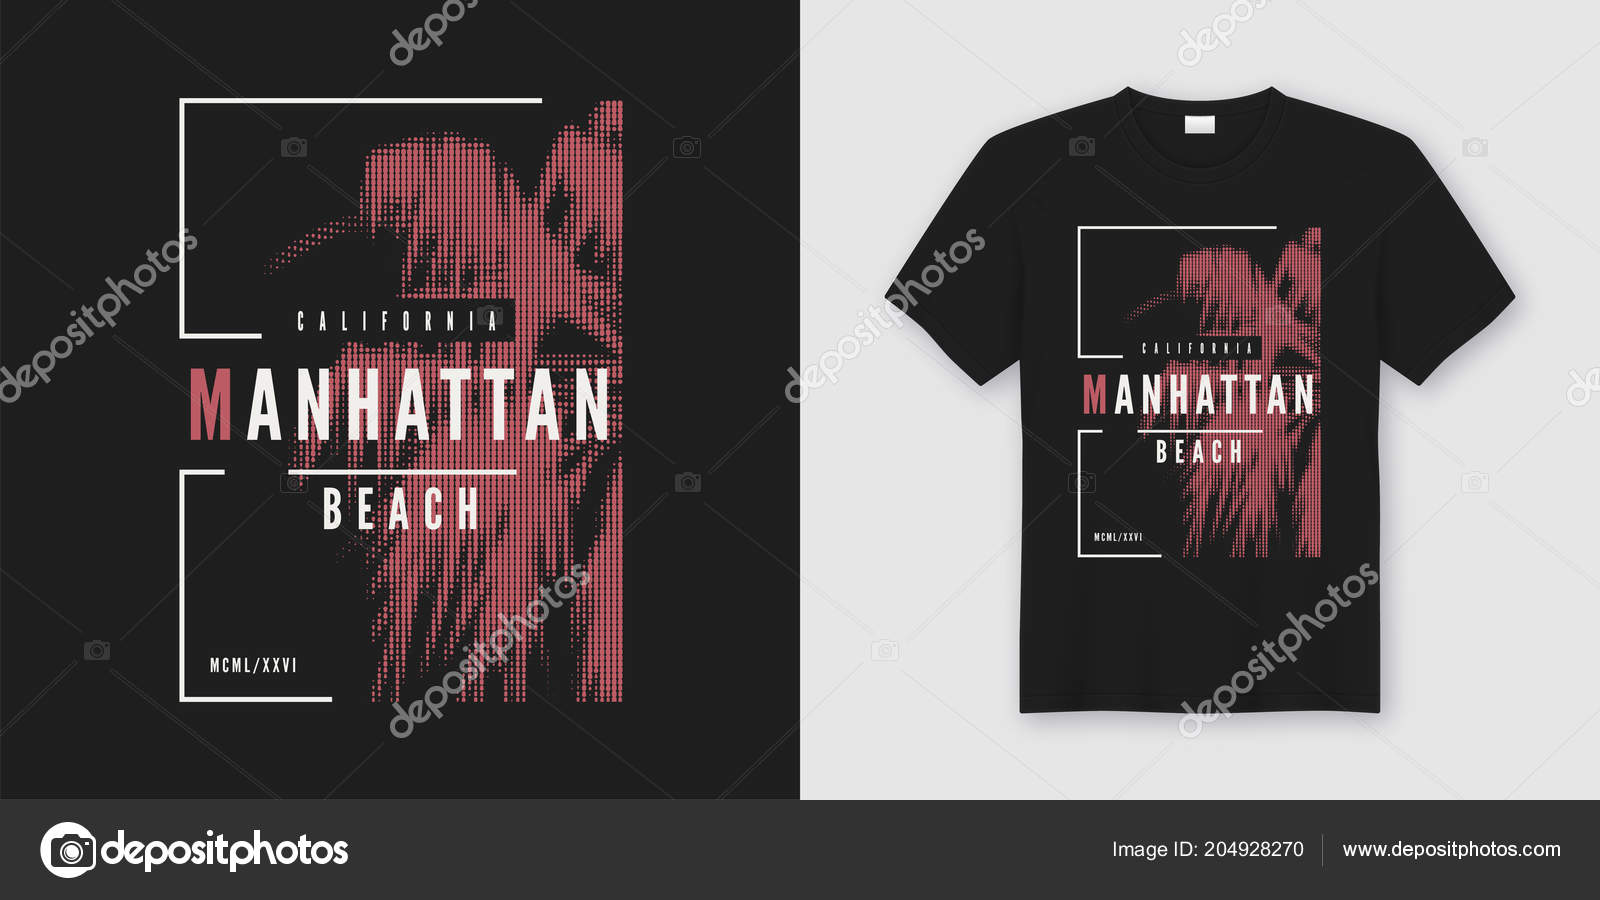 Manhattan Beach T Shirt And Apparel Trendy Design With Styled Pa